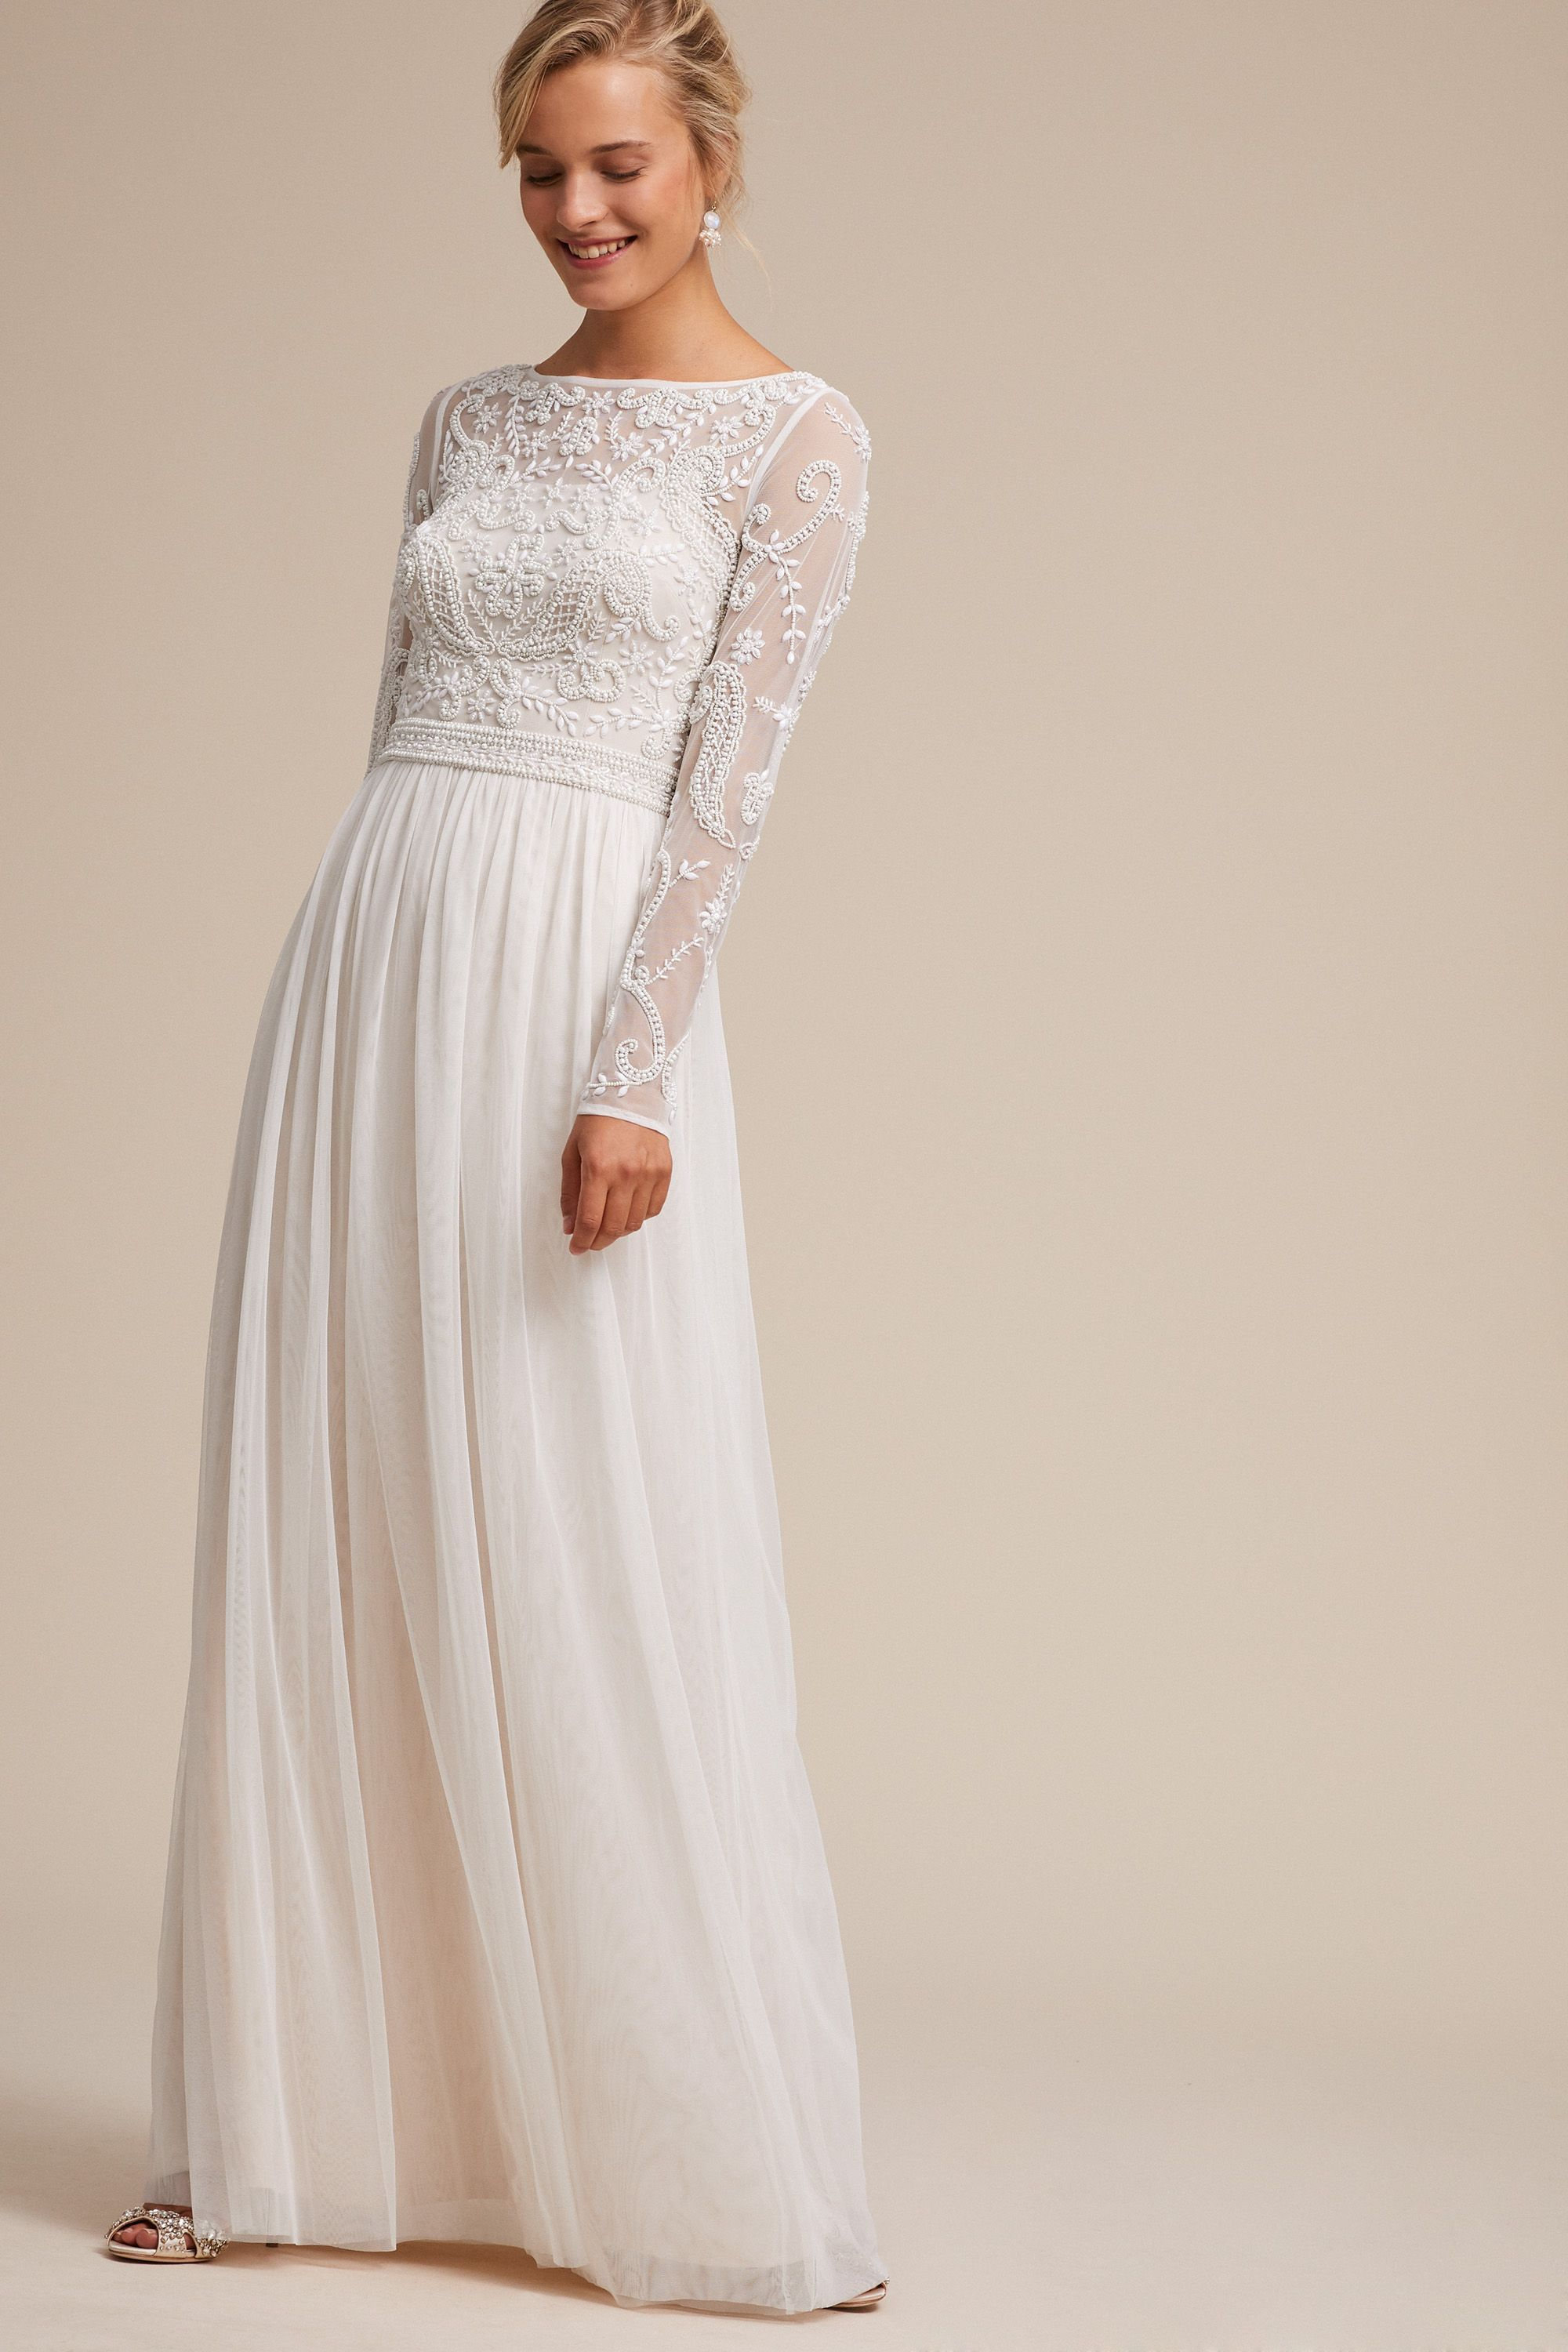 Bhldn S Sinclair Dress In Ivory Champagne Gorgeous Wedding Dress